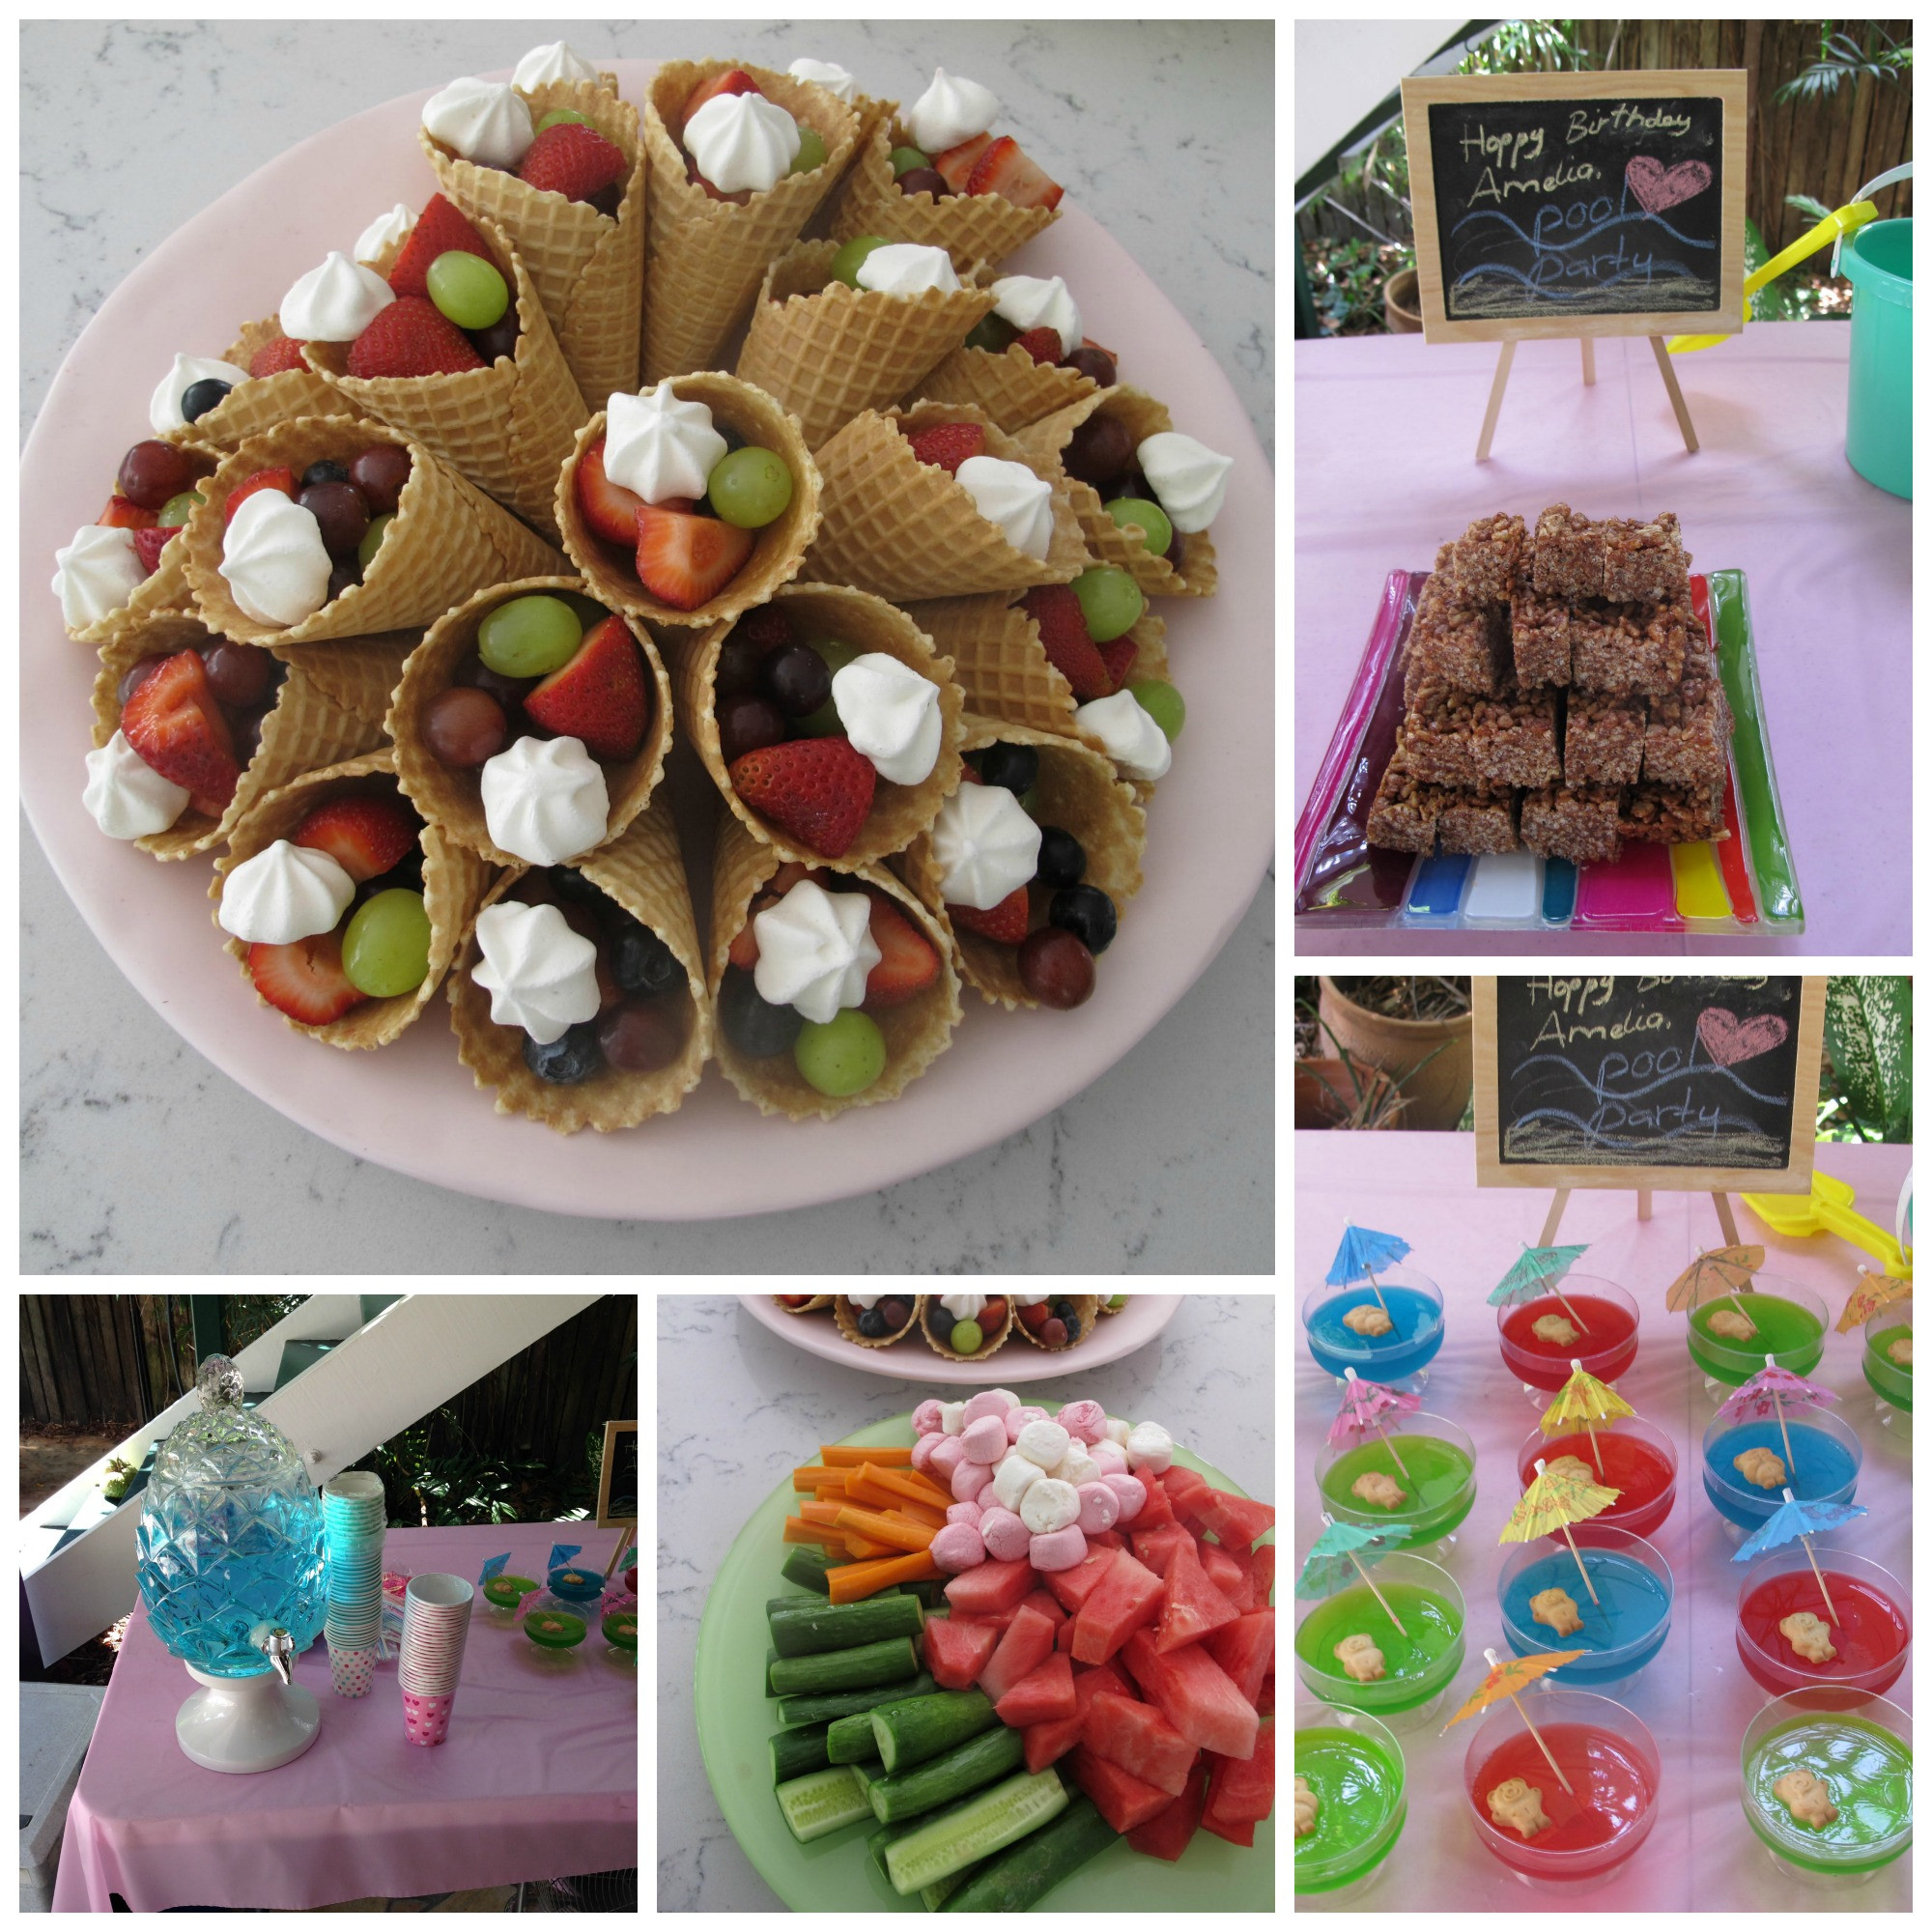 Food Ideas For Pool Party  Birthday Pool Party Tips Tricks and Cake hint have